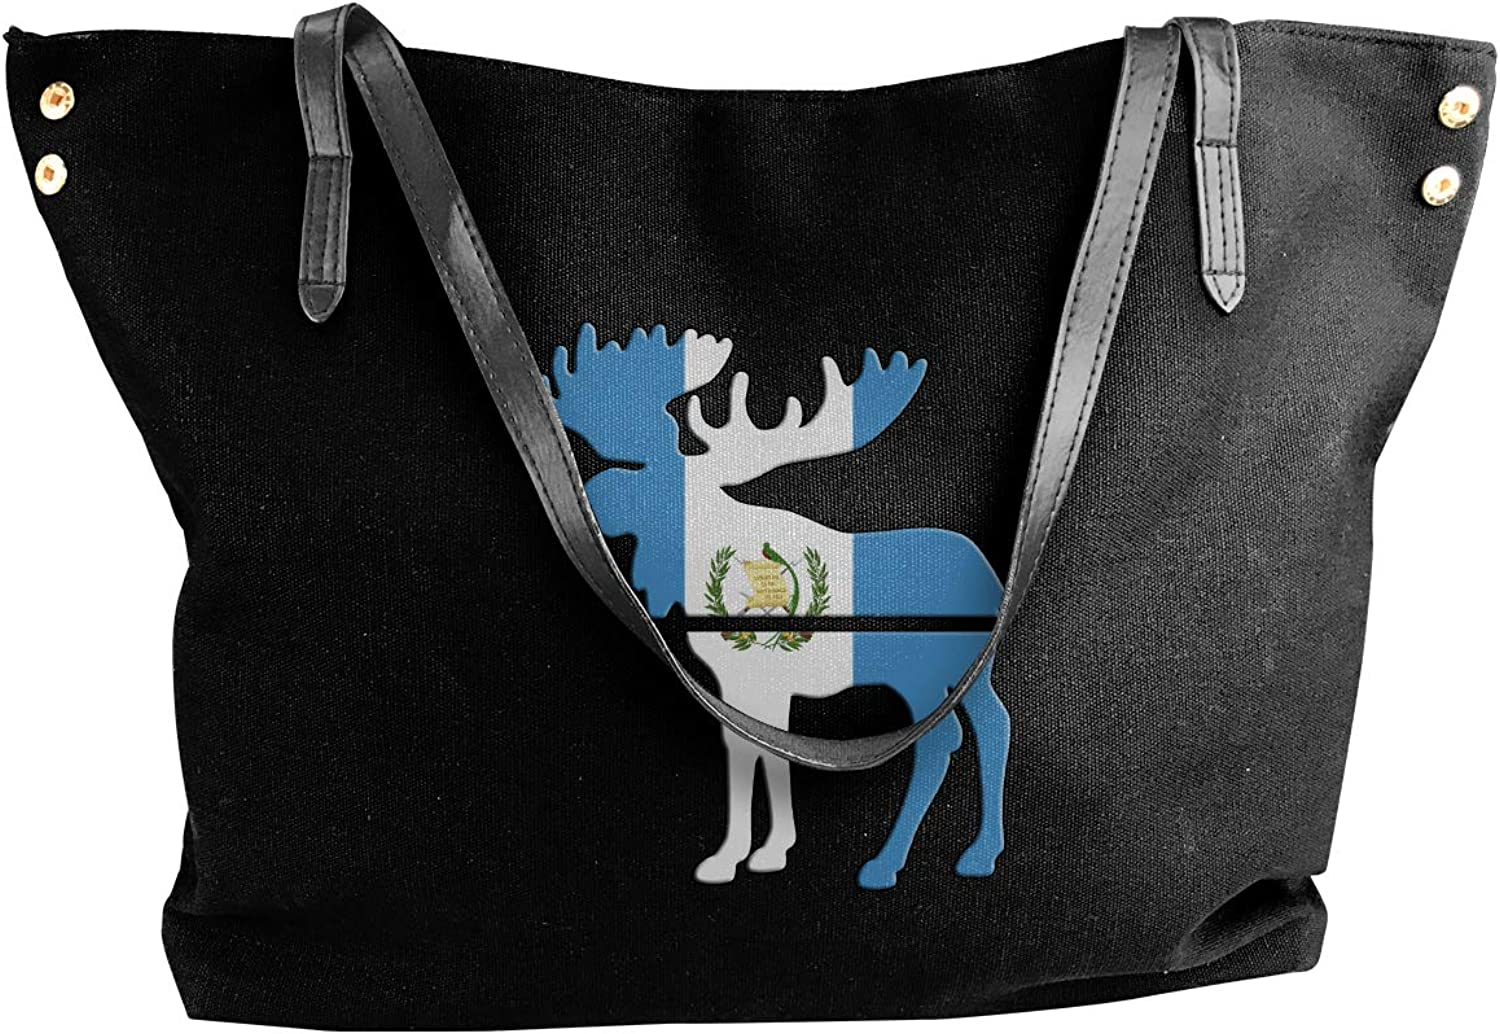 Moose Guatemala Flag Women'S Recreation Canvas Handbag For Travel Work Bag